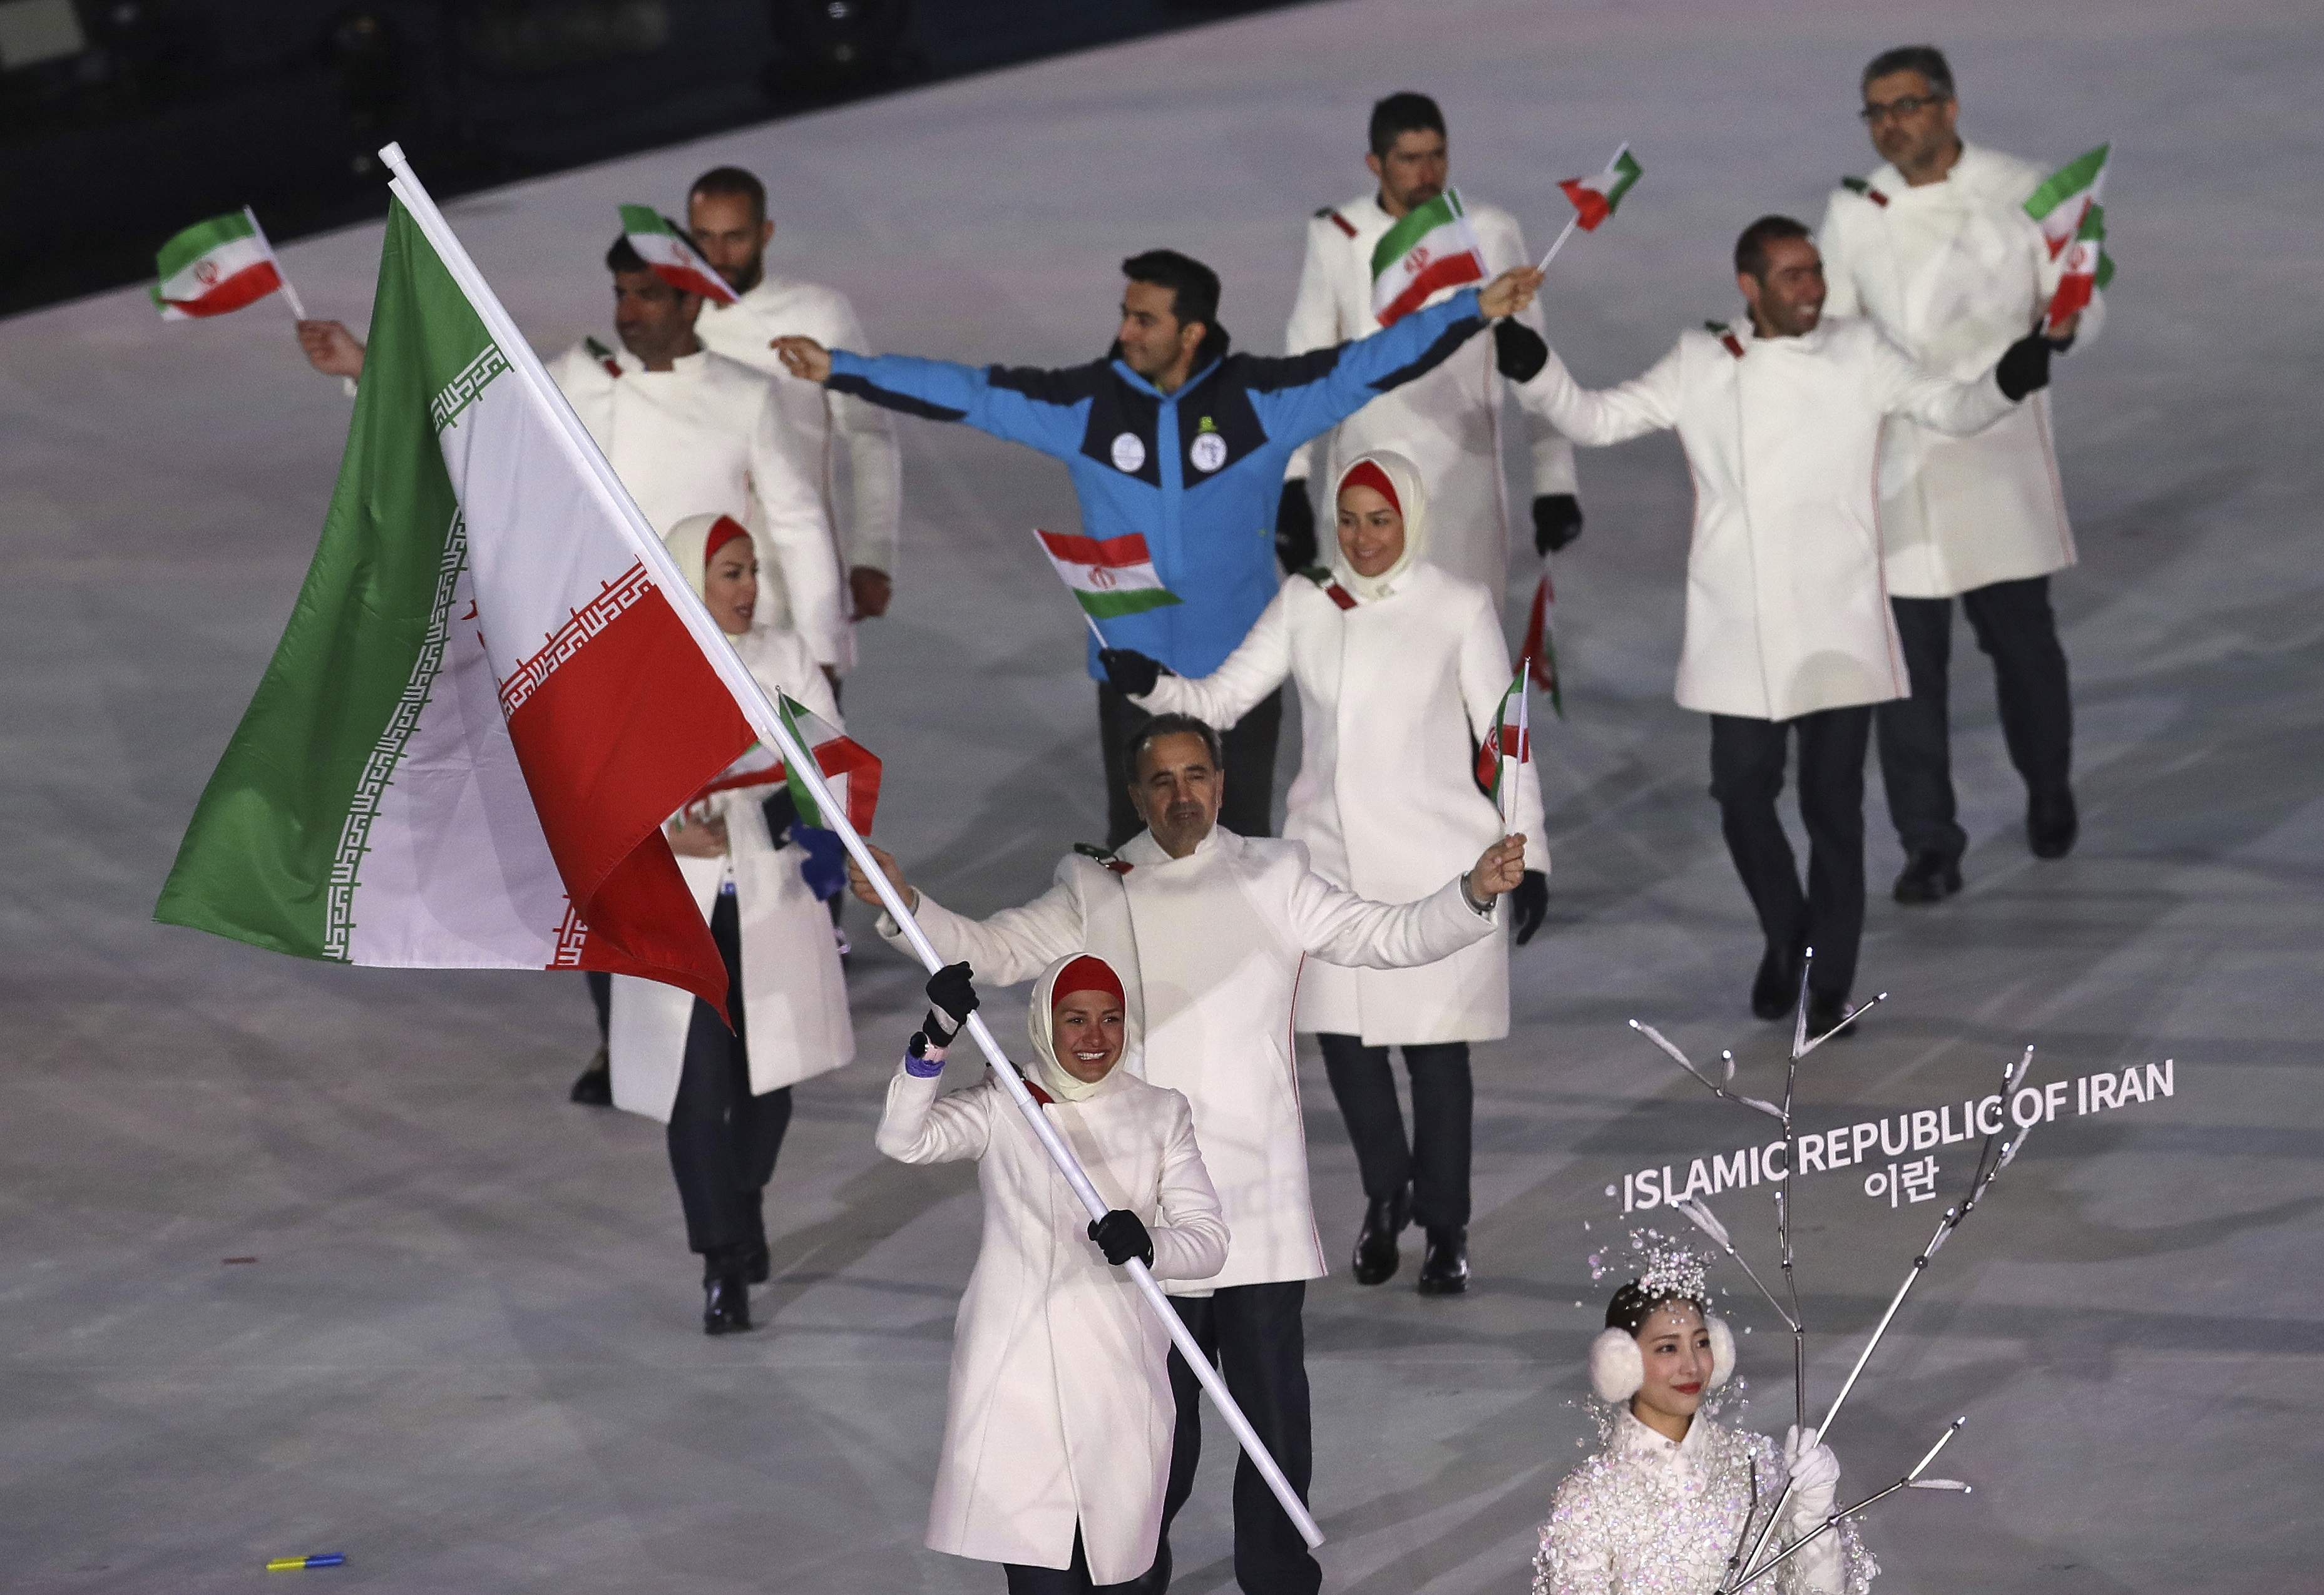 Samaneh Beyrami Baher carries the flag of Iran during the opening ceremony of the 2018 Winter Olympics in Pyeongchang, South Korea, Friday, Feb. 9, 2018. (AP Photo/Michael Sohn)